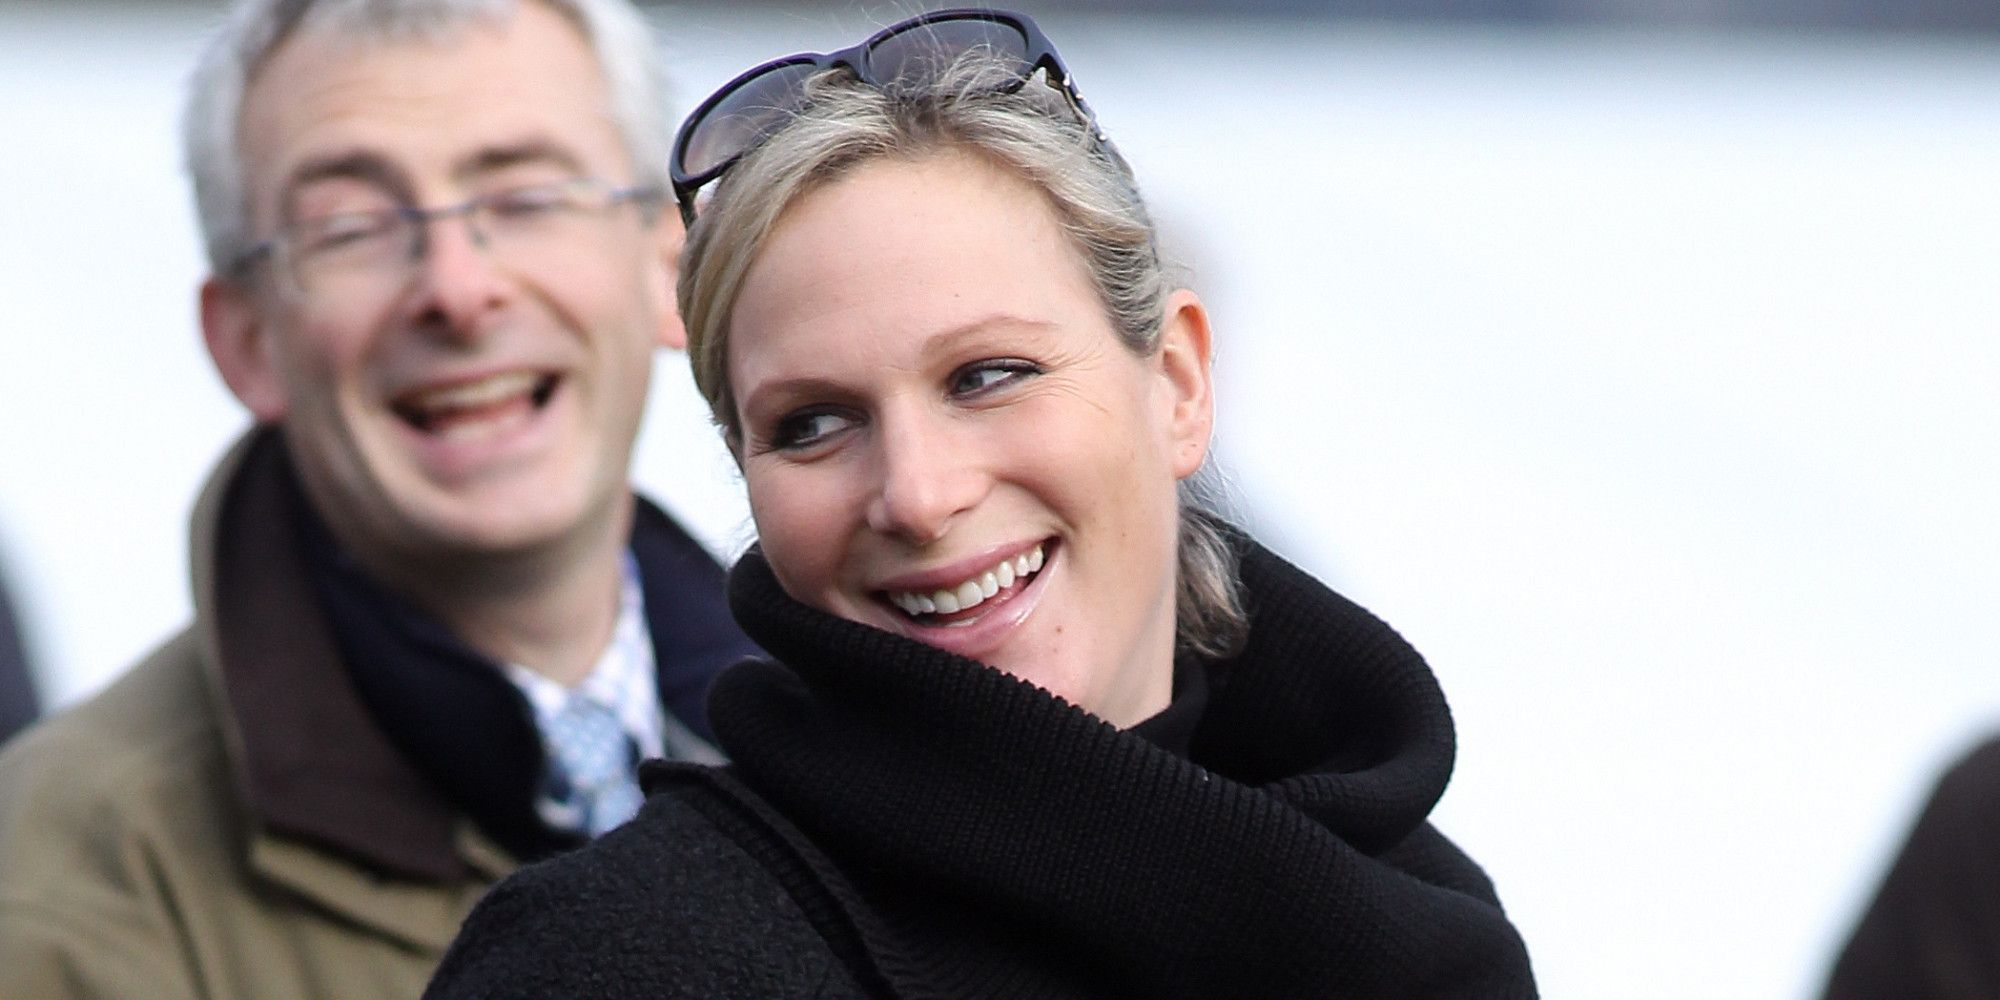 494e3a466cf Zara Phillips Rocks Over-The-Knee Boots At 8 Months Pregnant. Just because  you re eight months pregnant